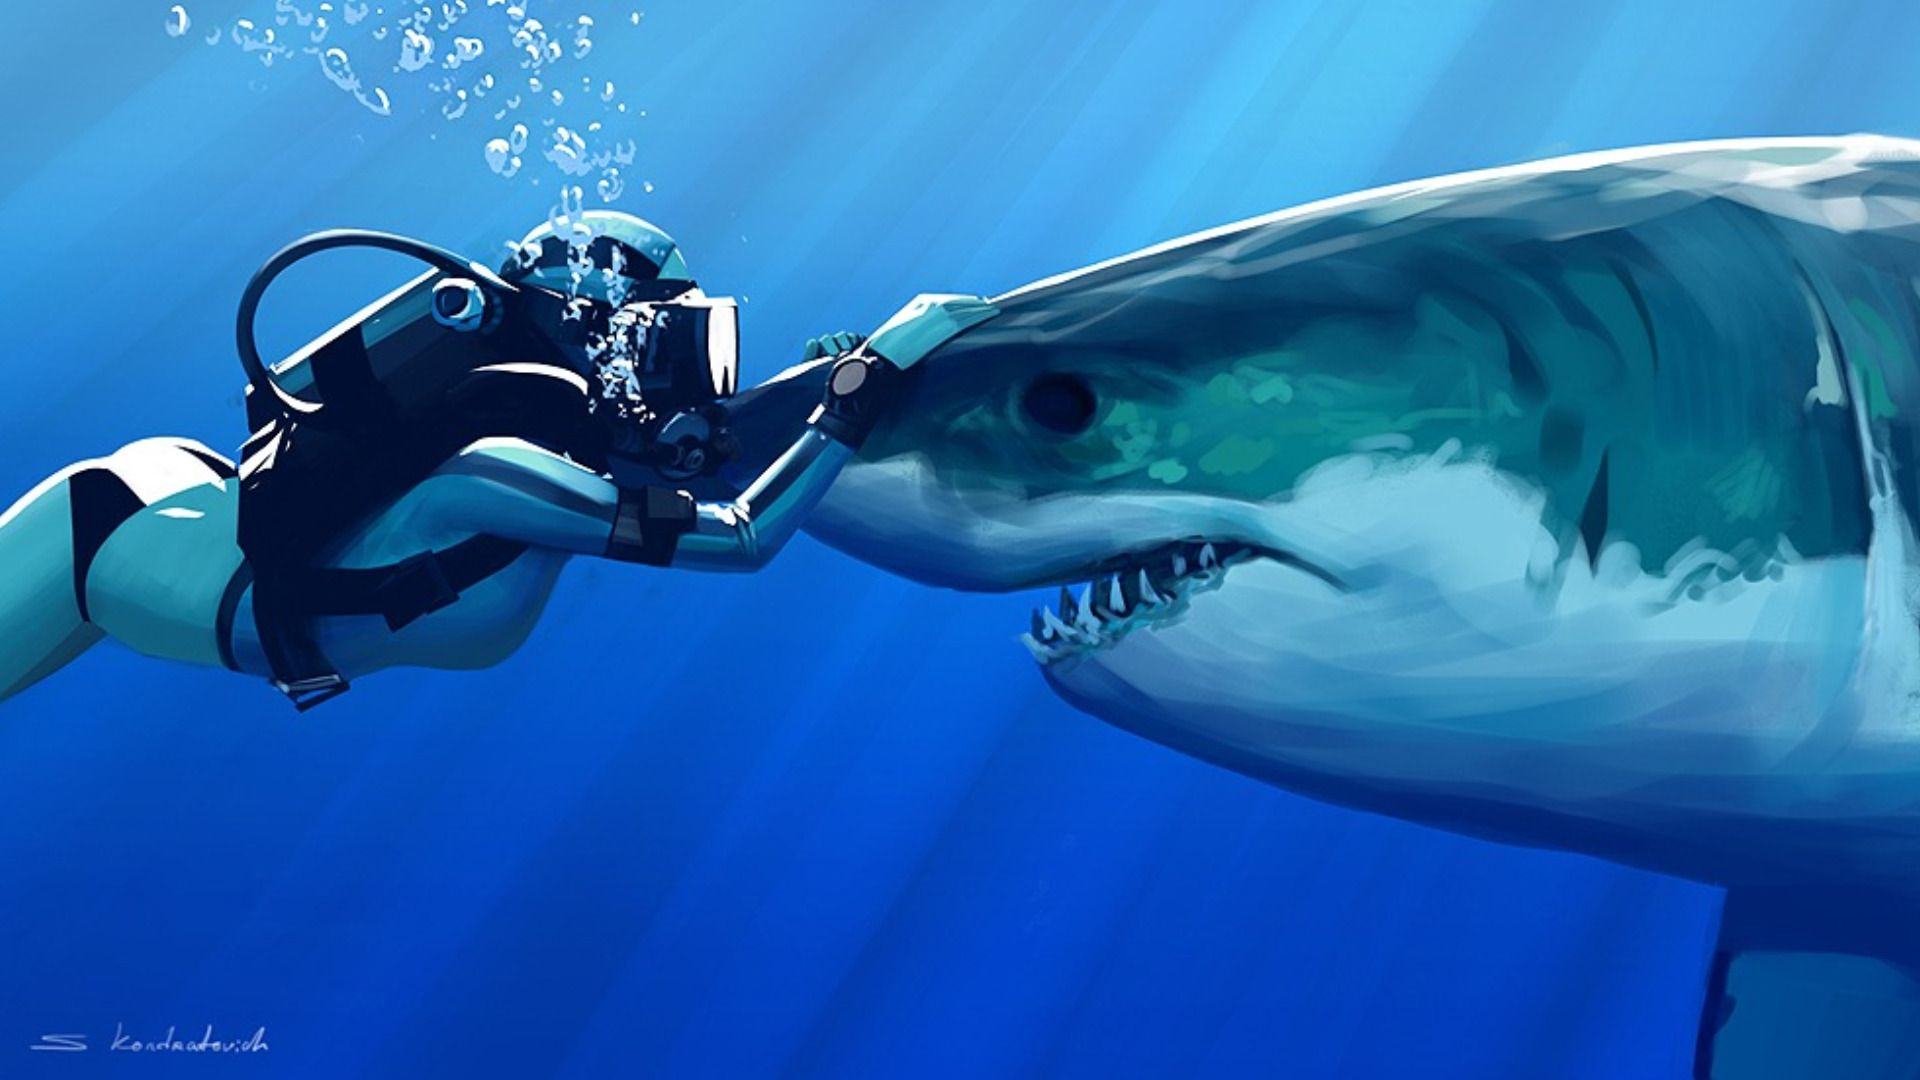 Cool Shark Wallpapers Top Free Cool Shark Backgrounds